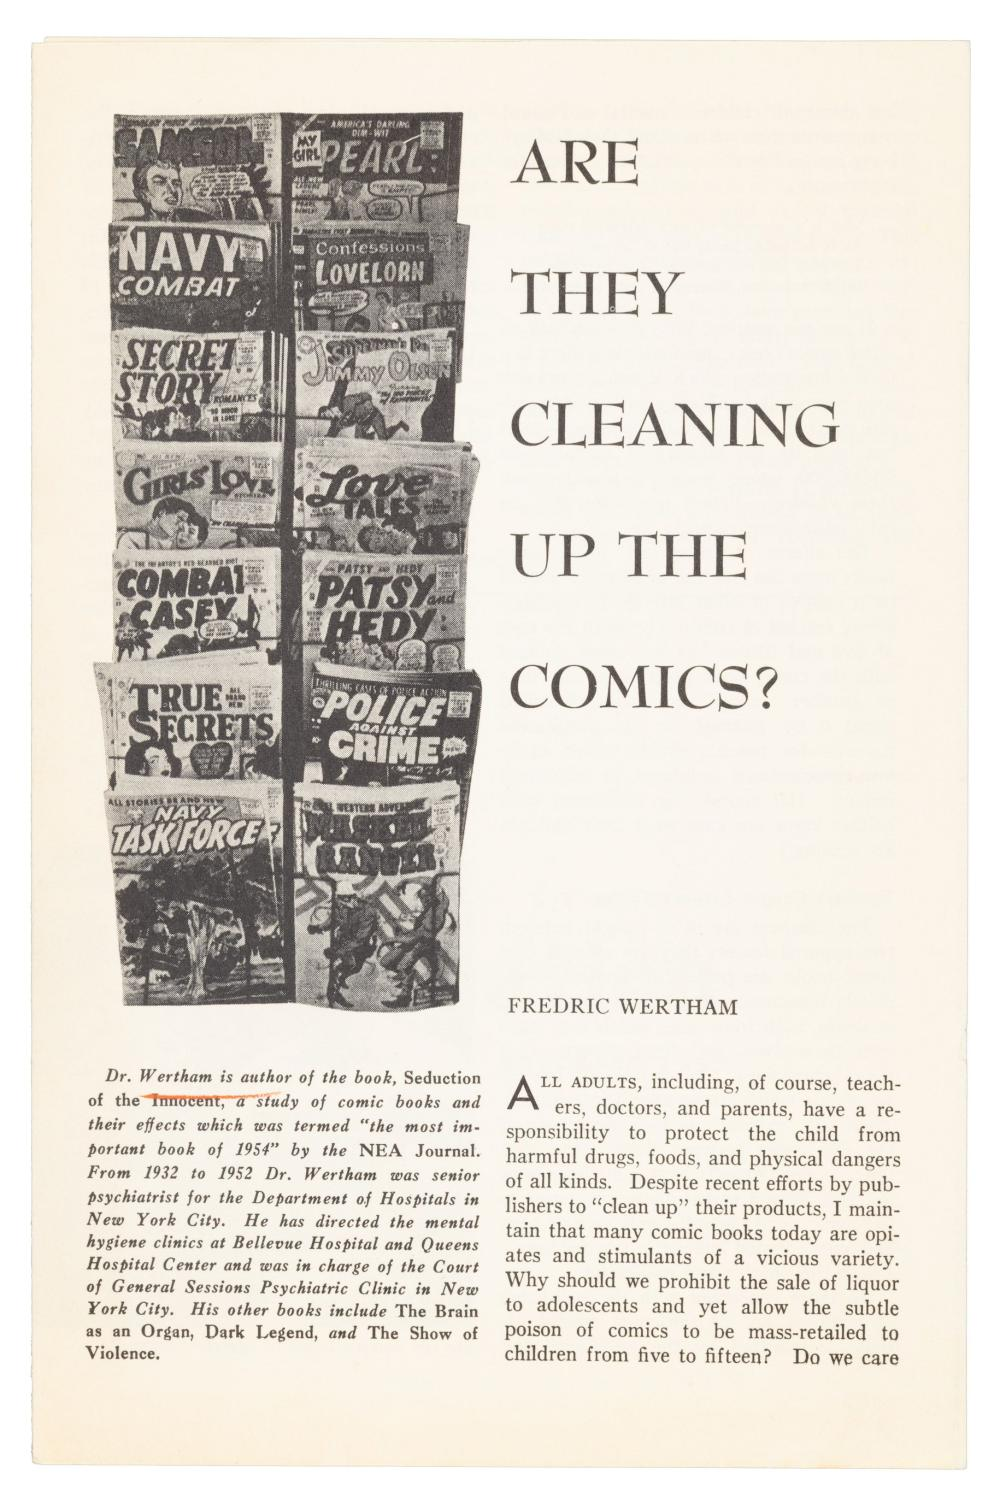 WERTHAM's Are They Cleaning Up the Comics? * Rare 1955 Pamphlet